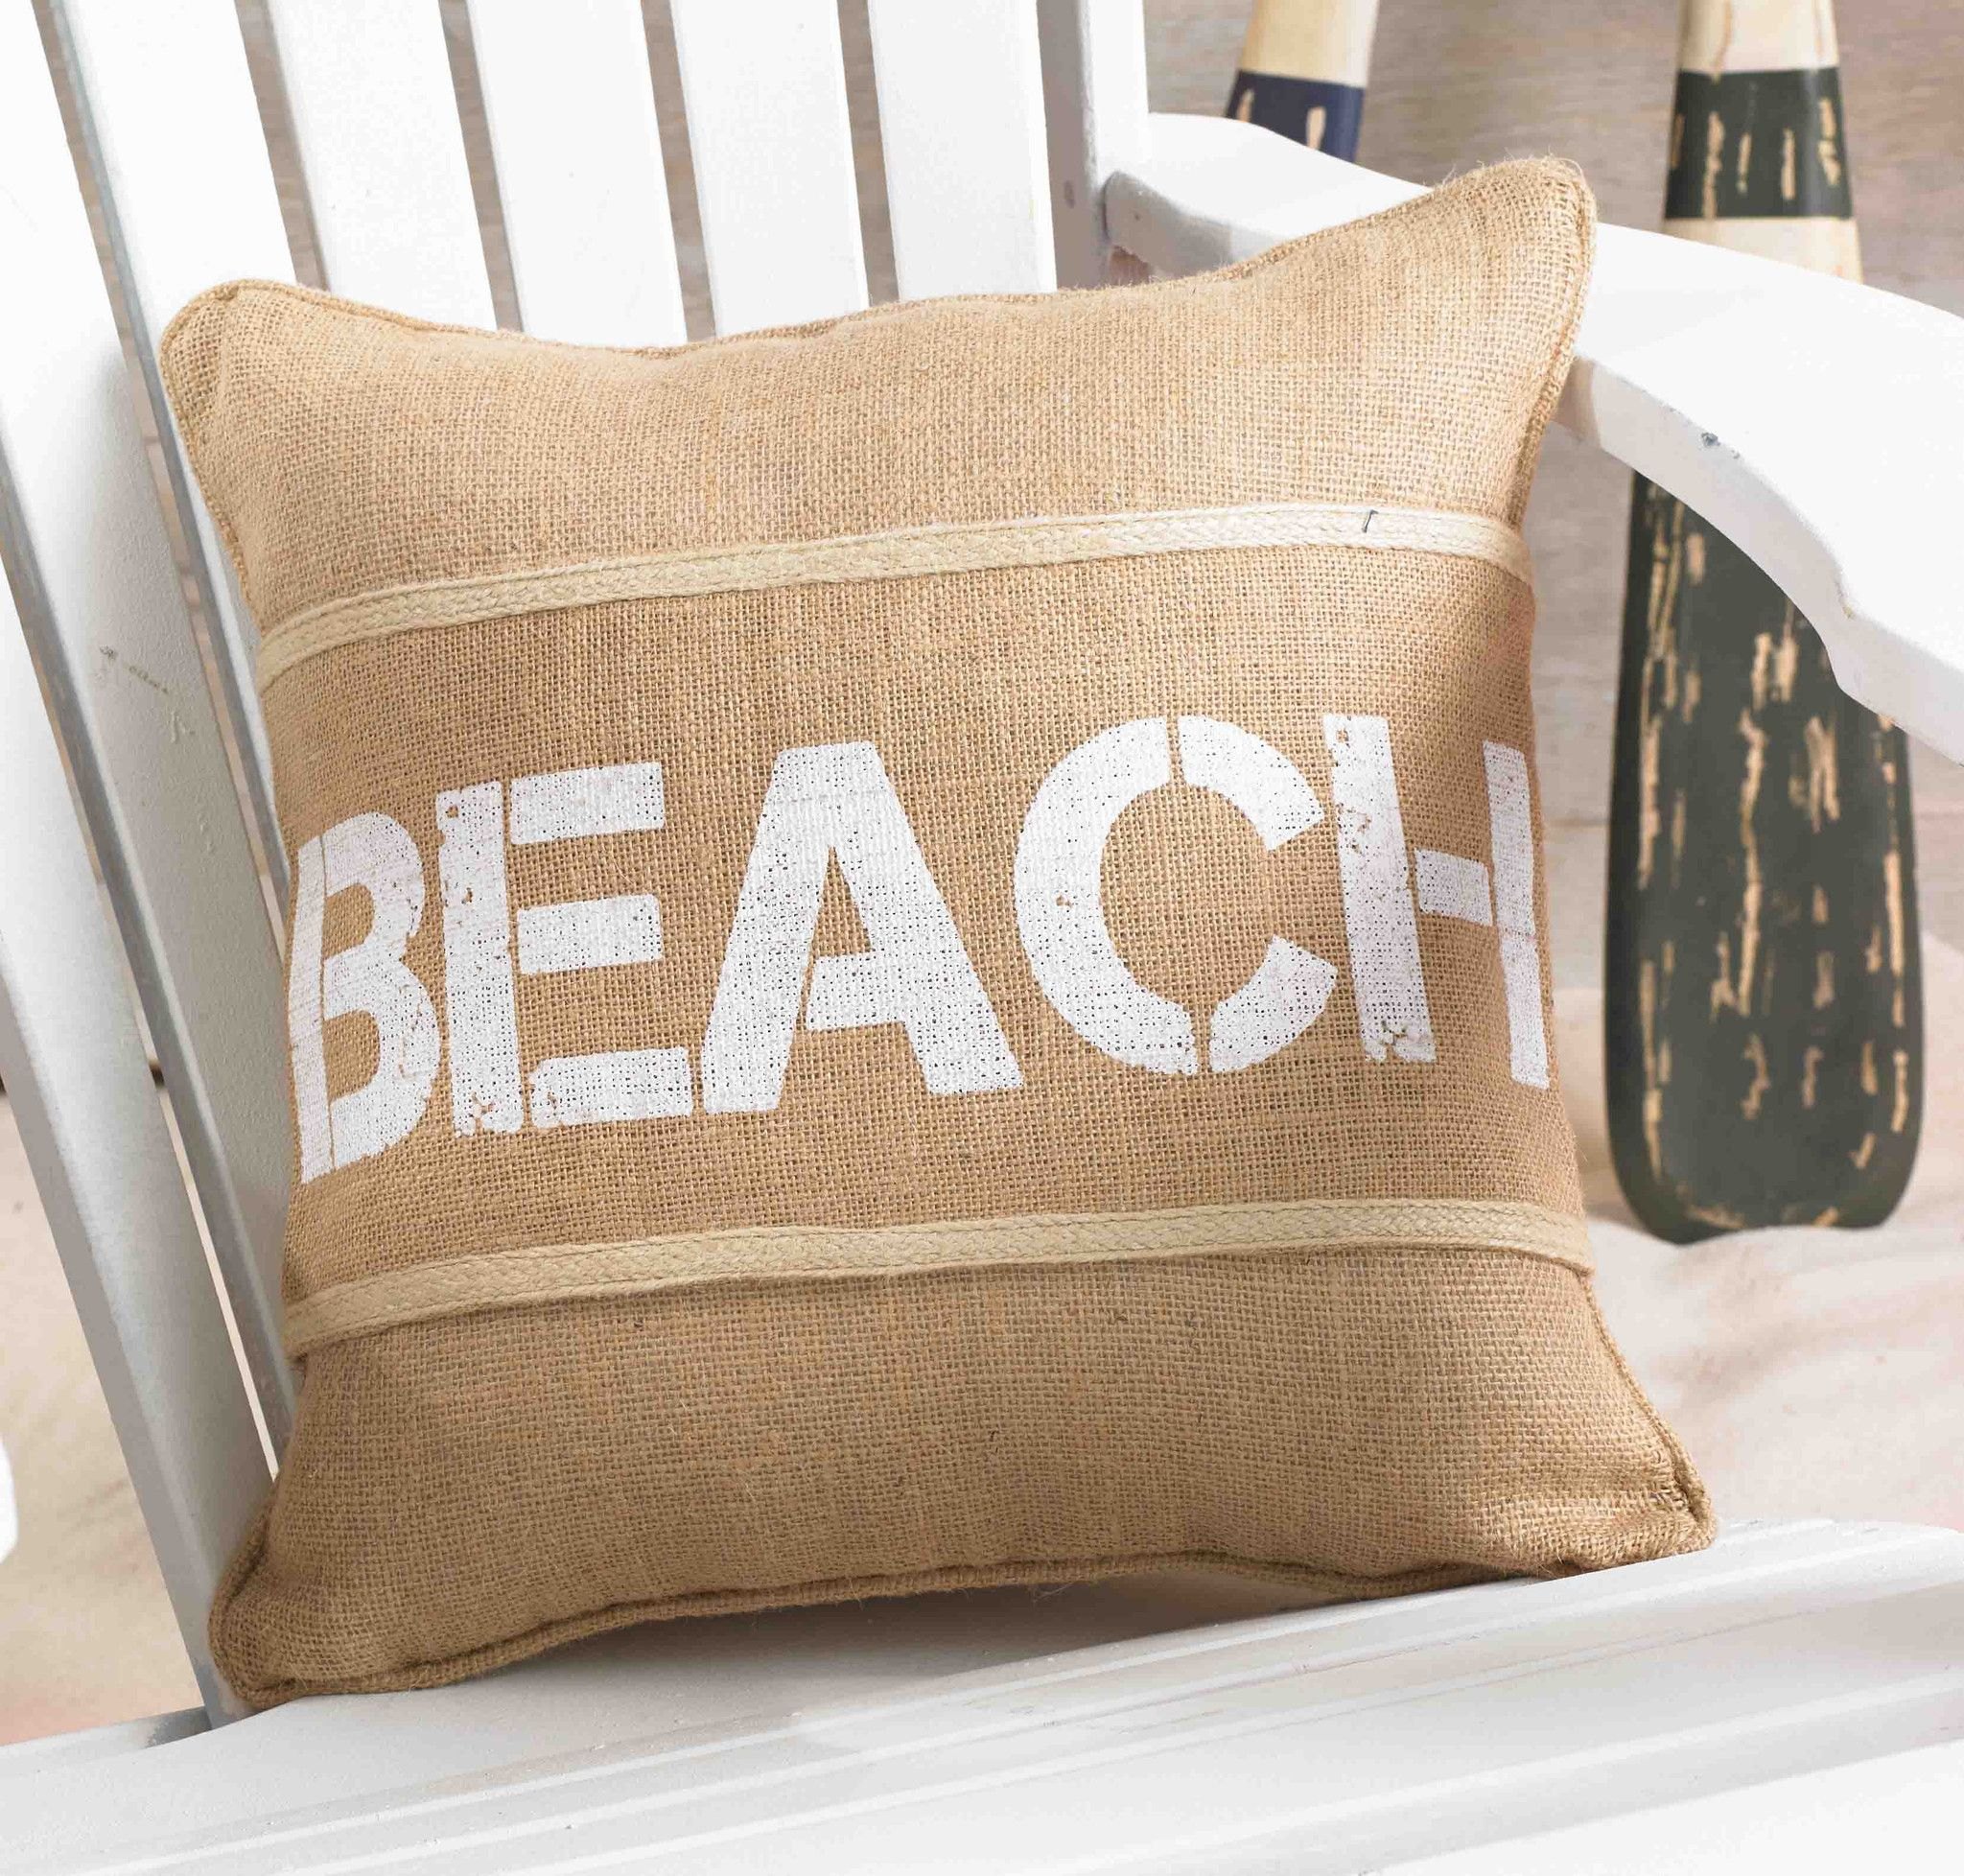 group life garden summer seat car from vaction decor beach item home print in chair throw aliexpress pillows style on com alibaba pillow cushion enjoy